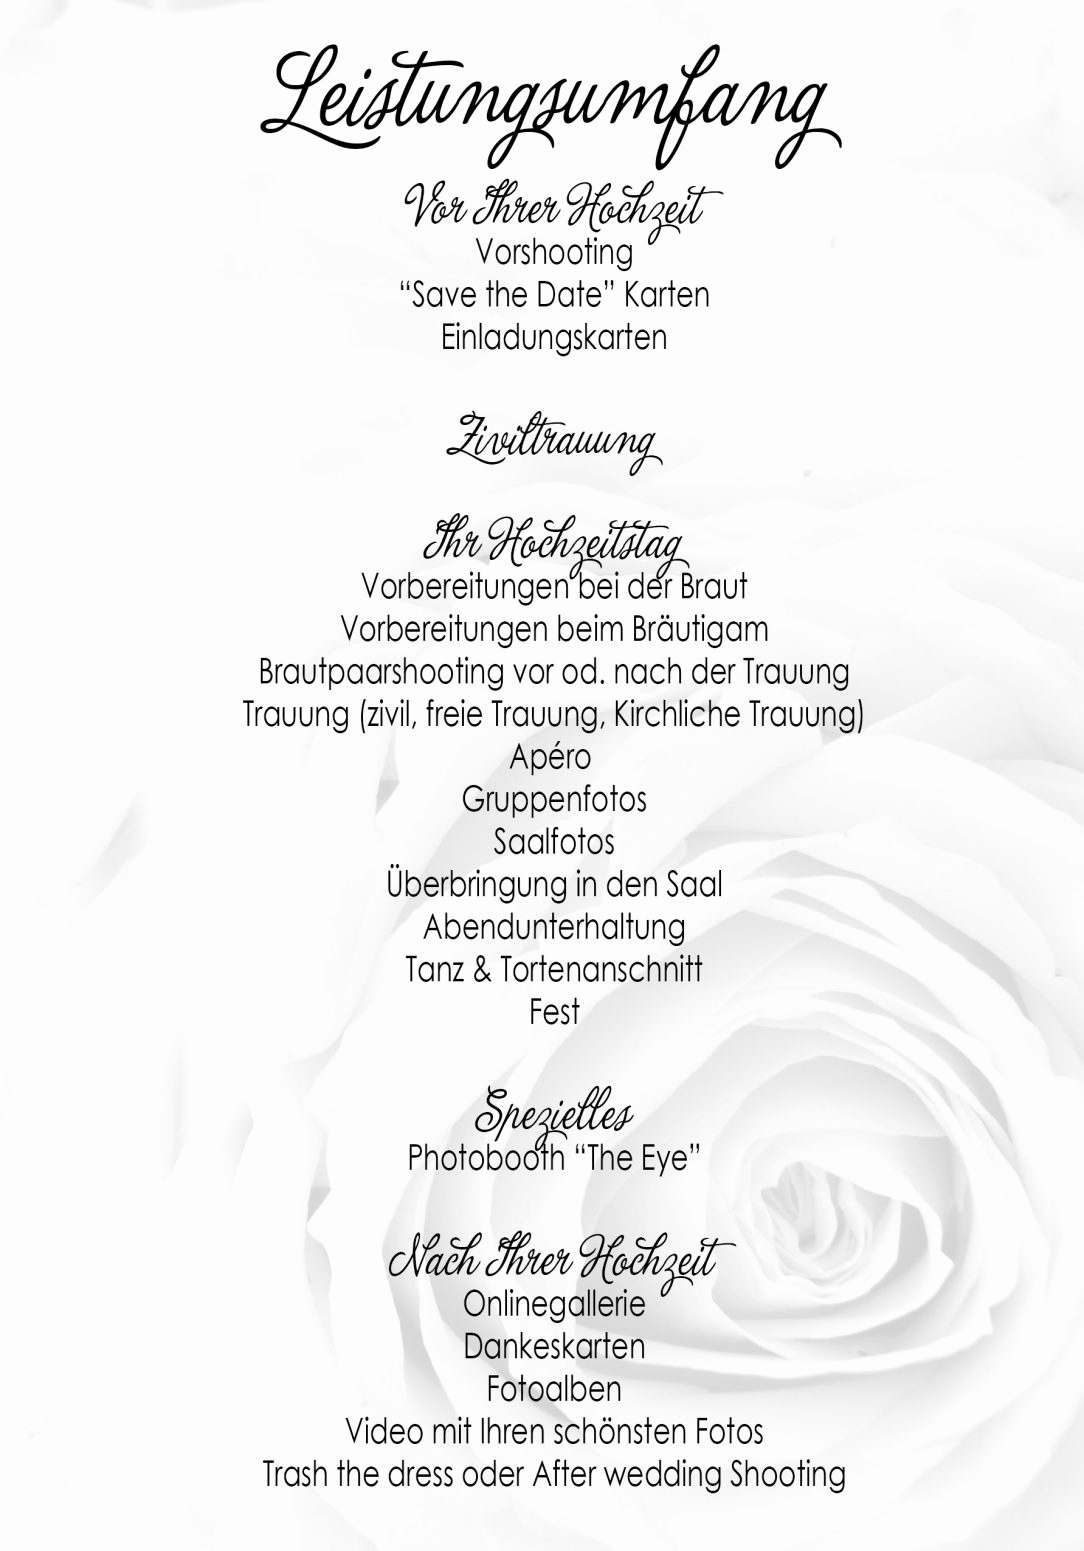 Dankeskarte Text Hochzeit Elegant Black and White 50th Birthday Invitation Templates Gold Wording Text